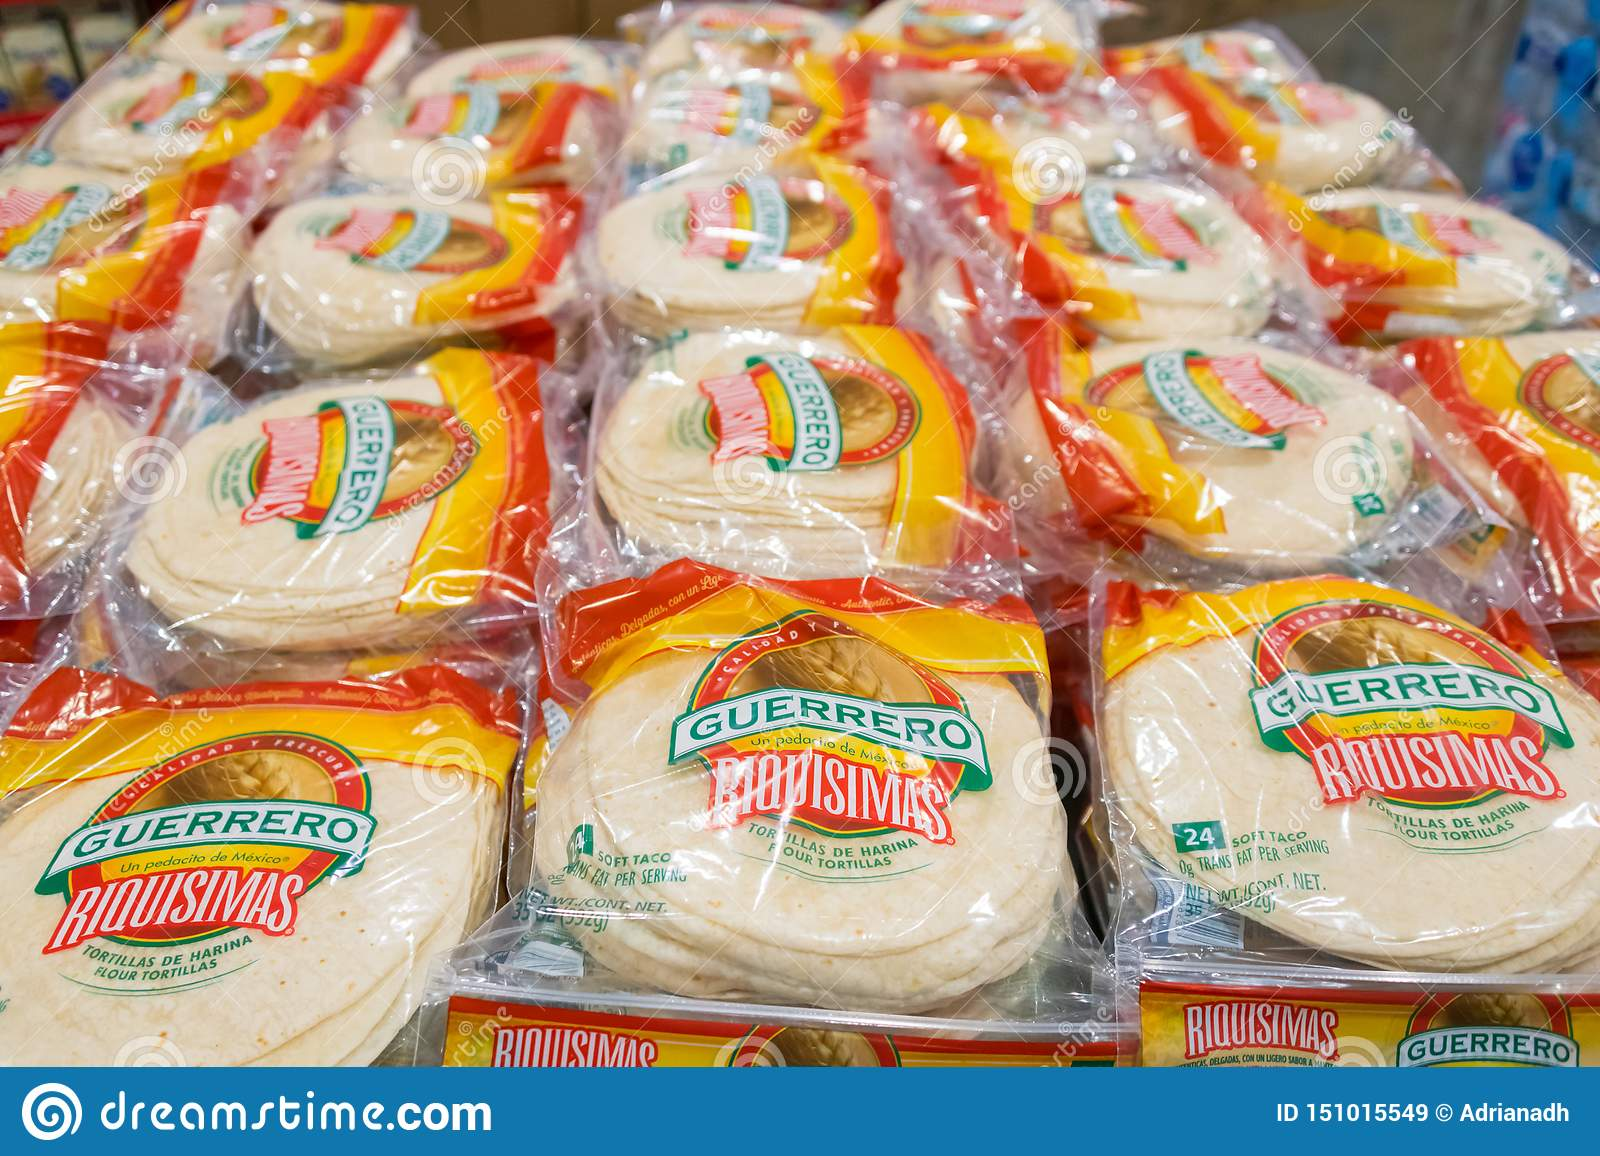 Guerrero Brand Soft Flour Tortillas Editorial Stock Image Image Of Soft Sale 151015549